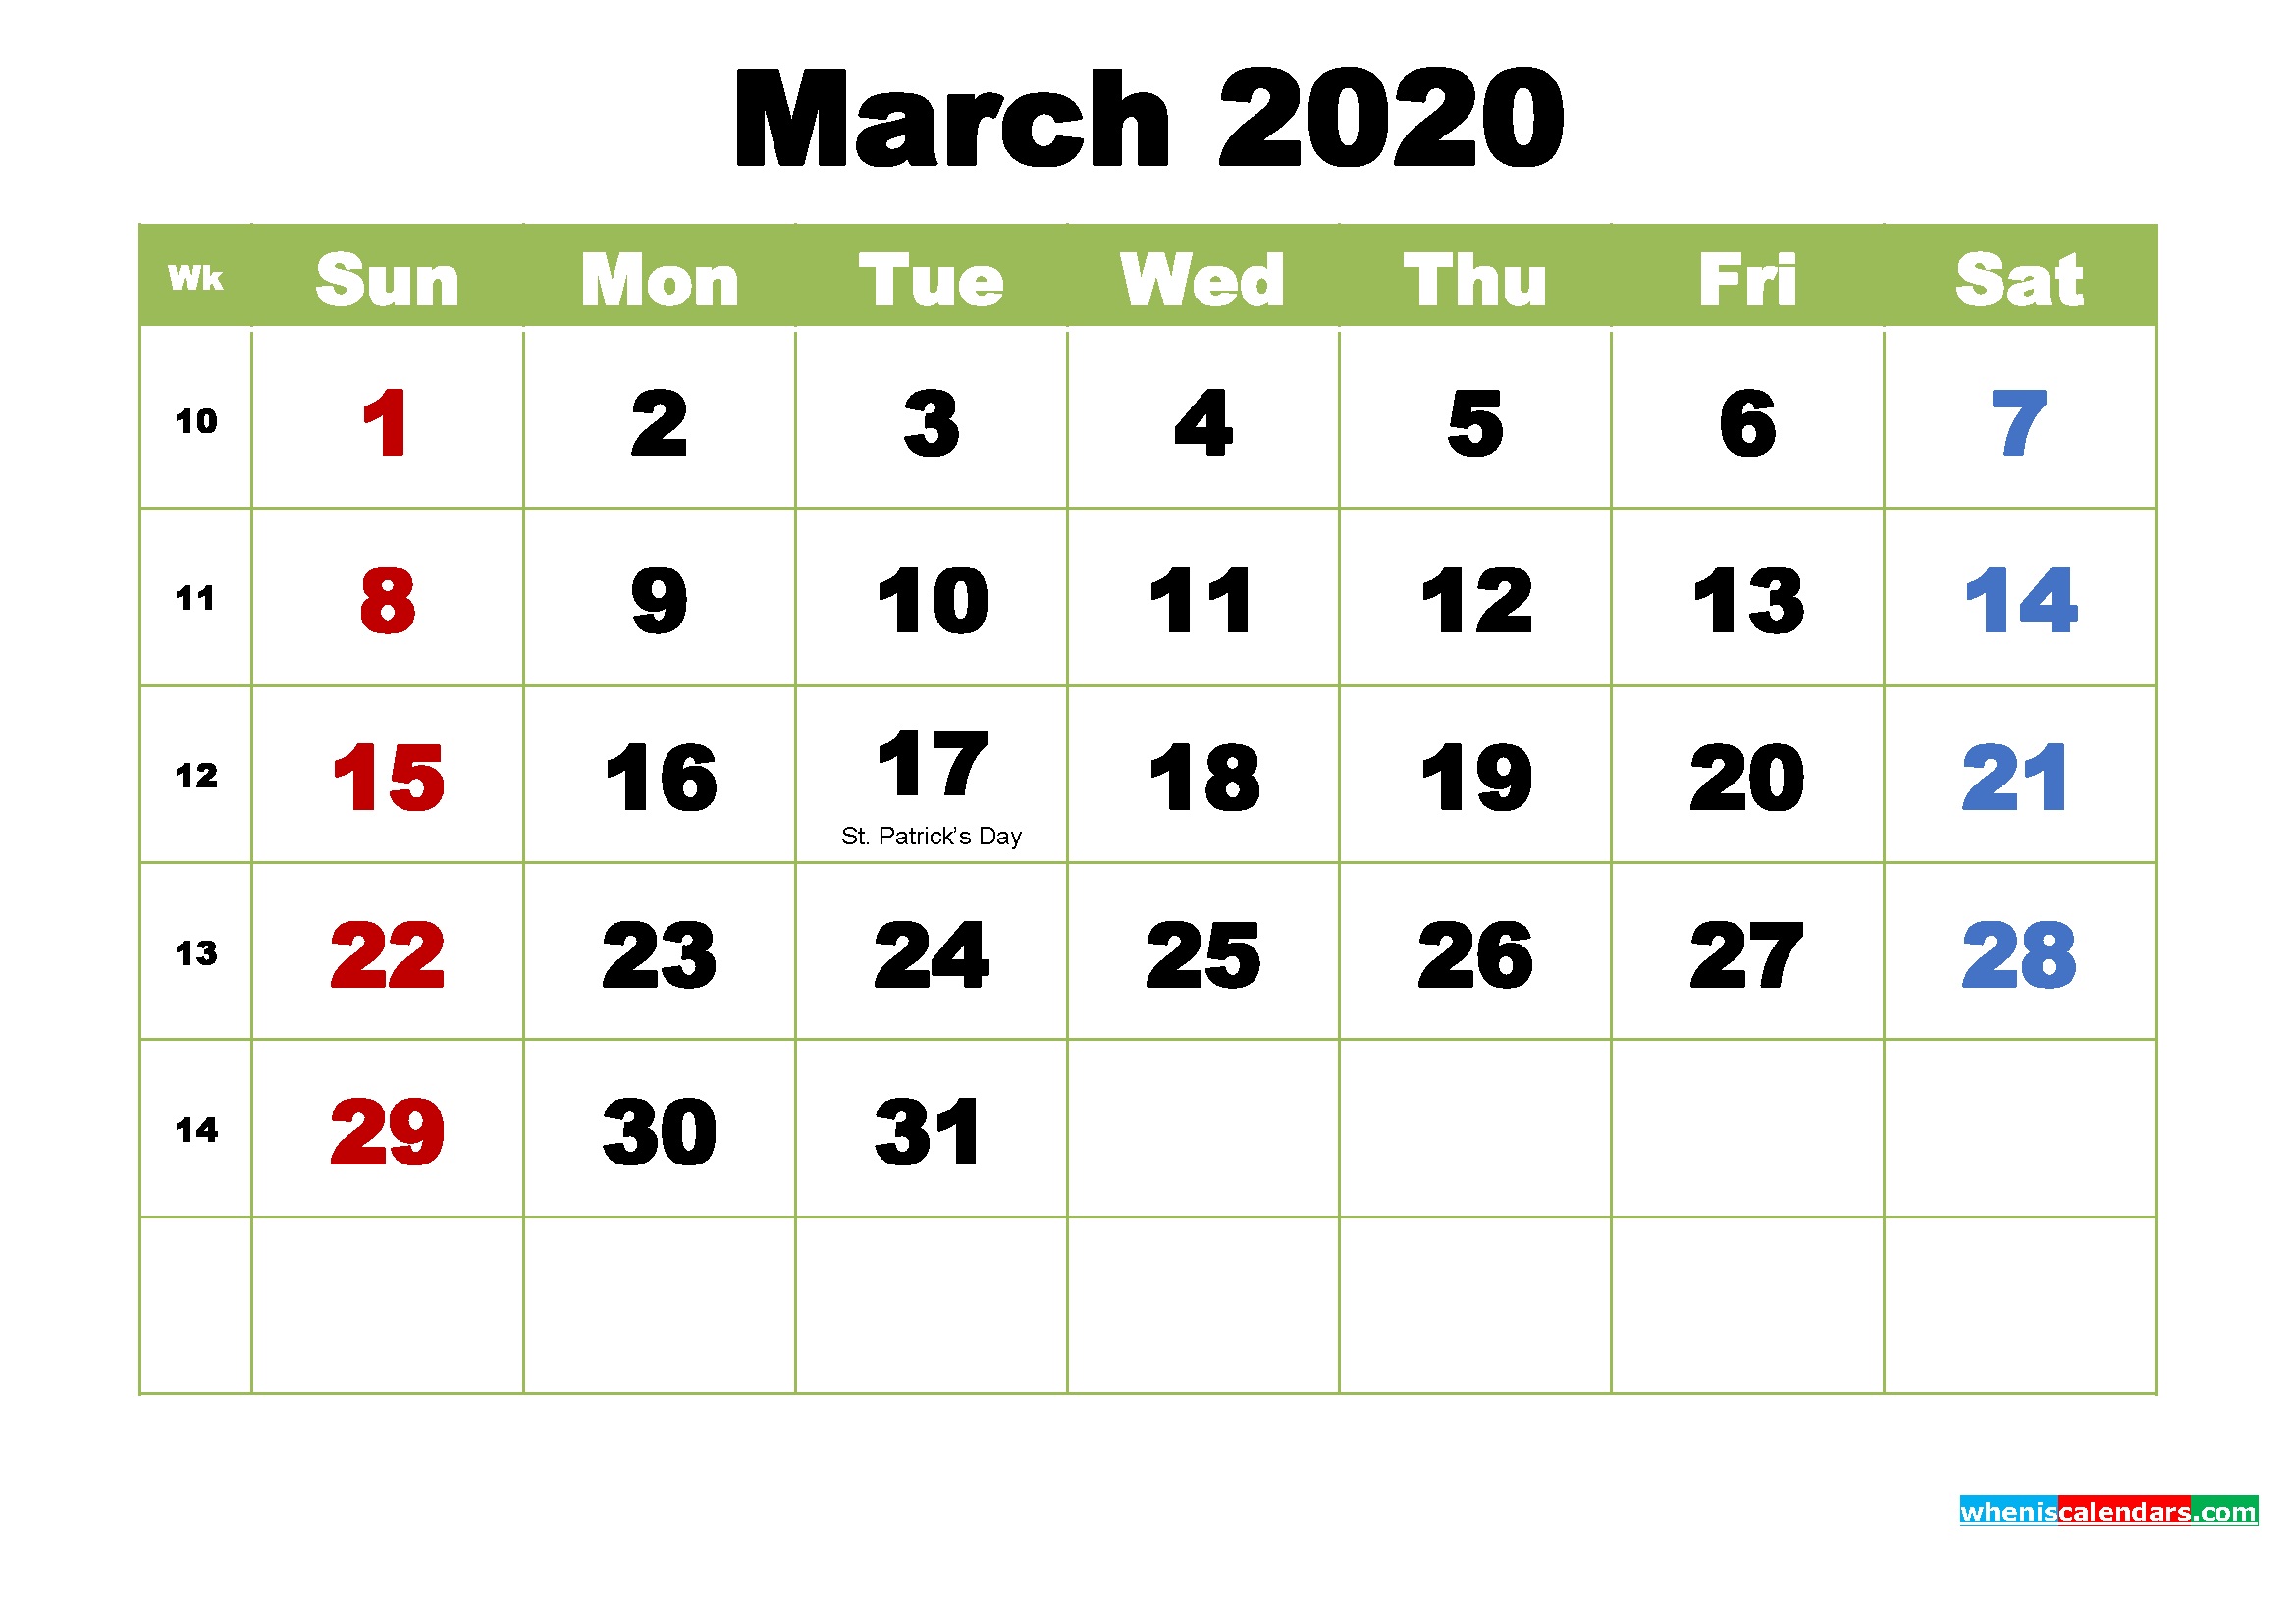 March 2020 Desktop Calendar with Holidays